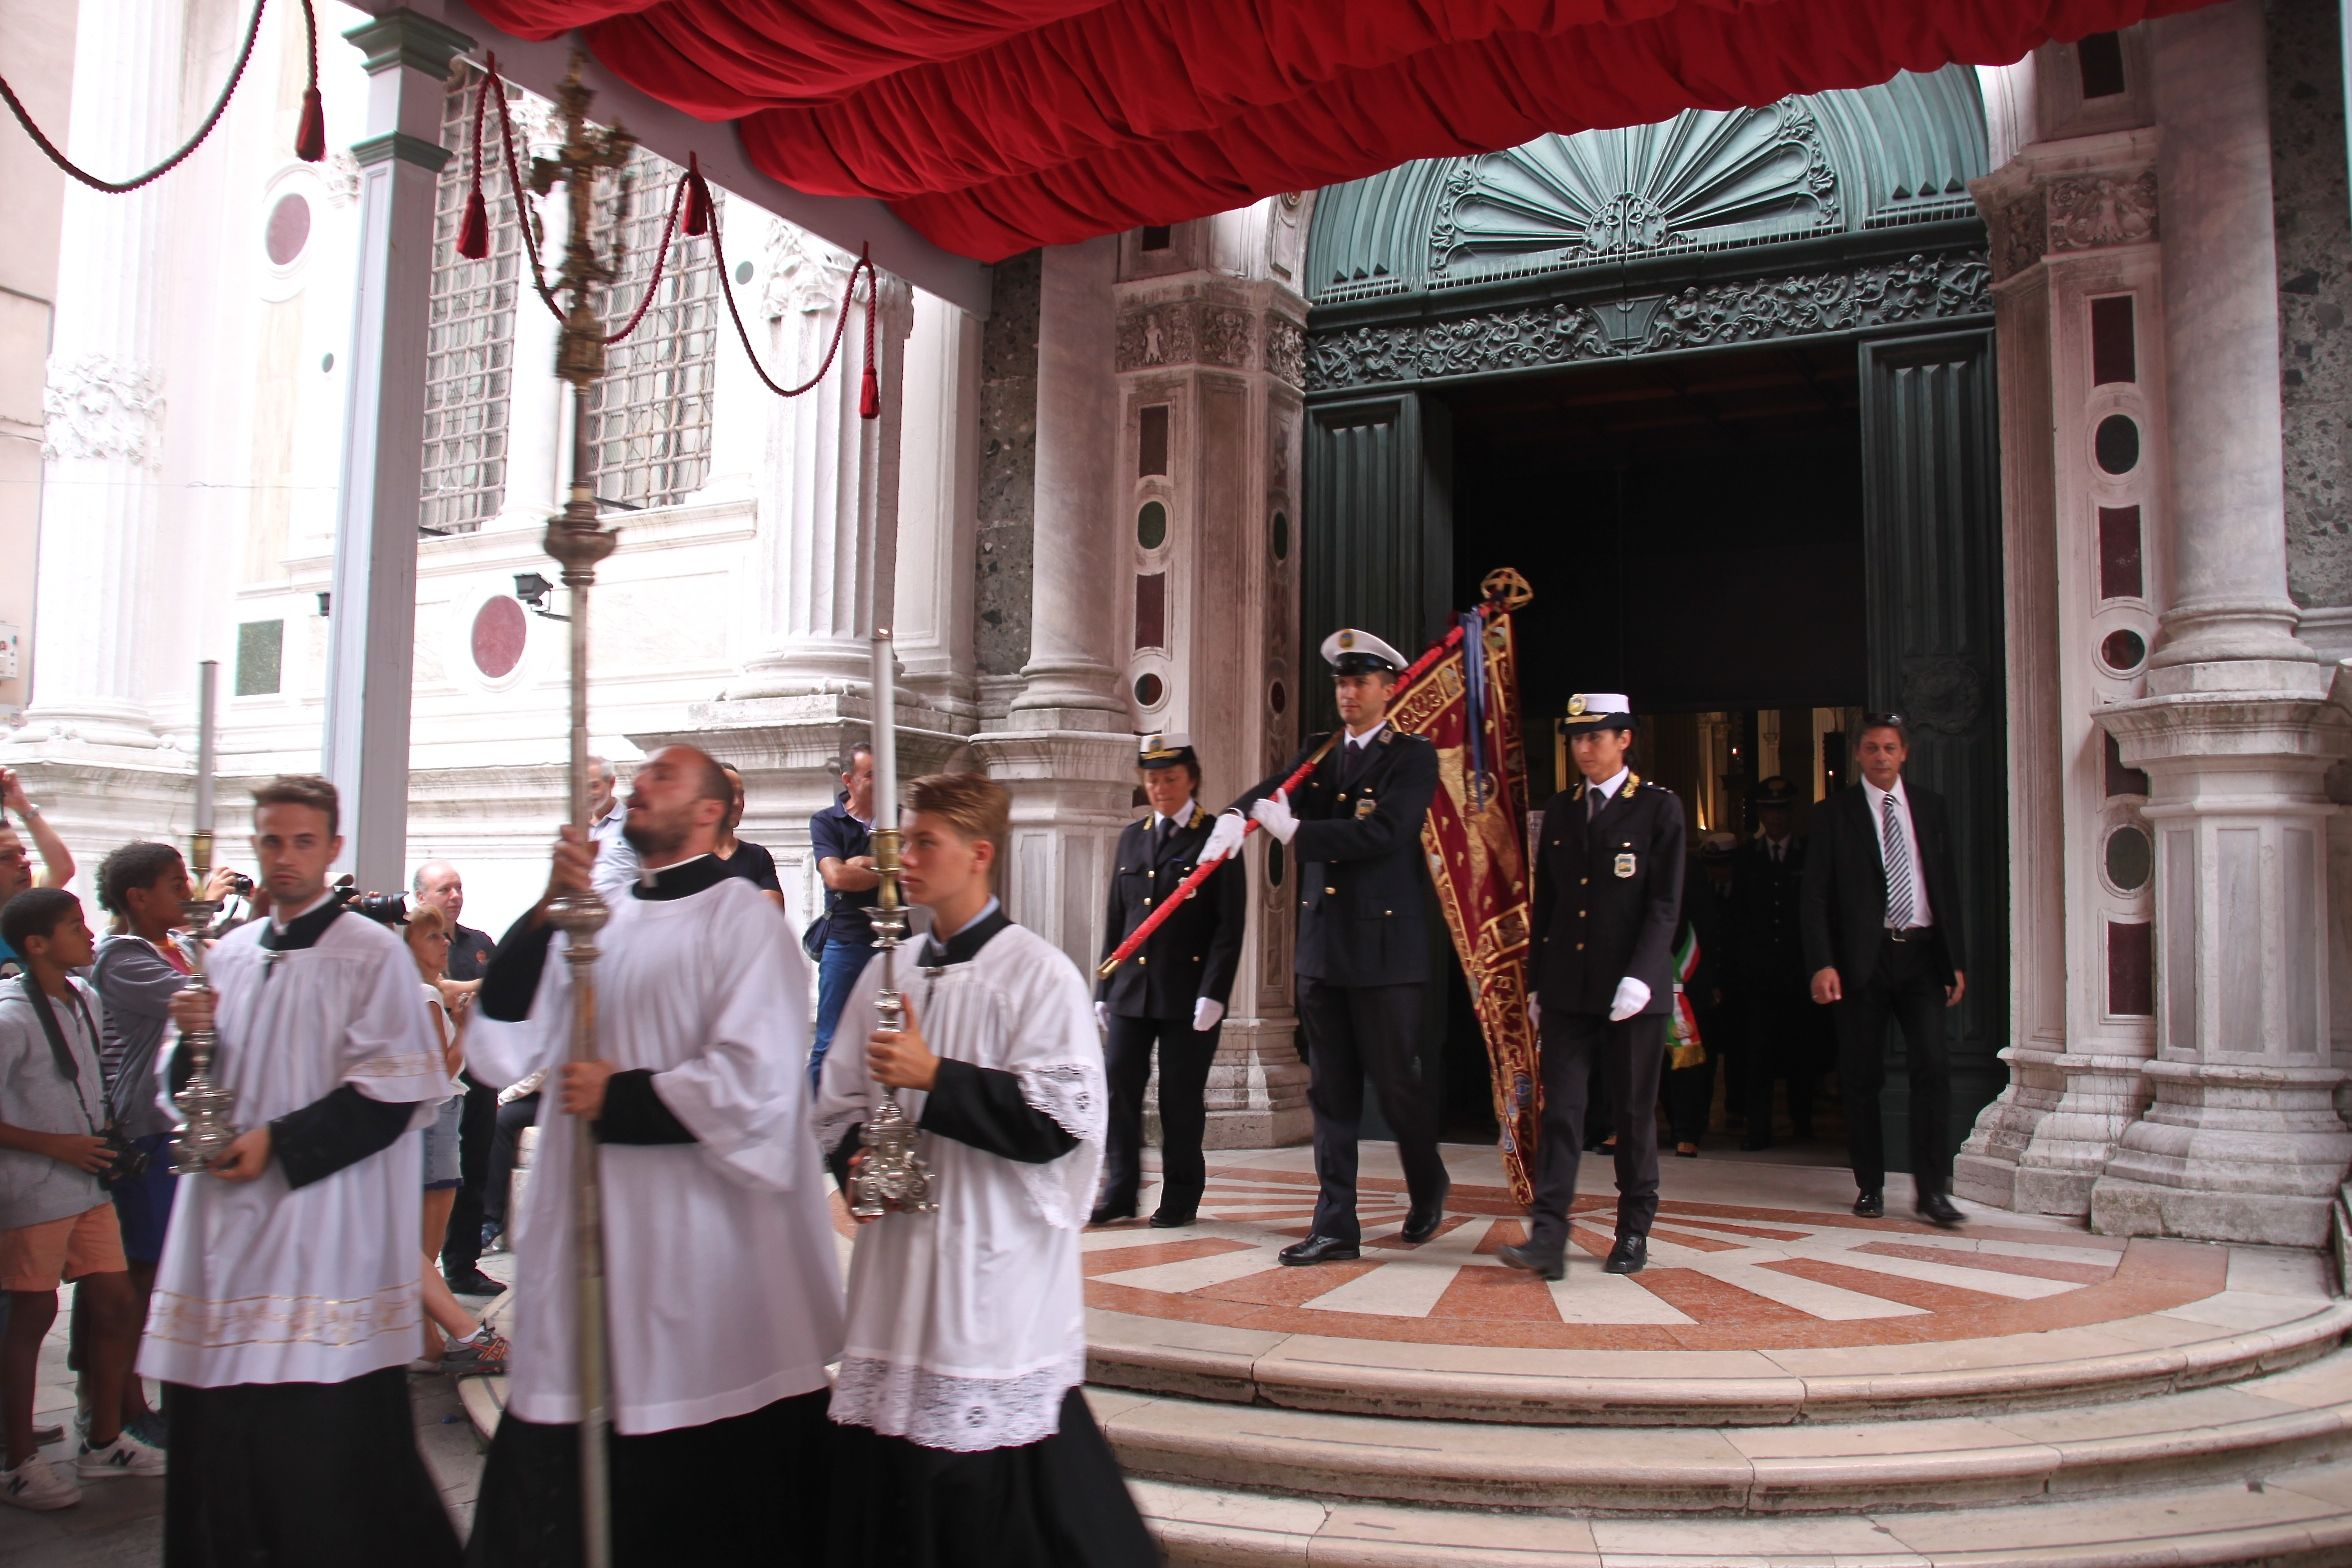 Festa di San Rocco - Members of the Venice Carabinieri Police Force process with the city's flag